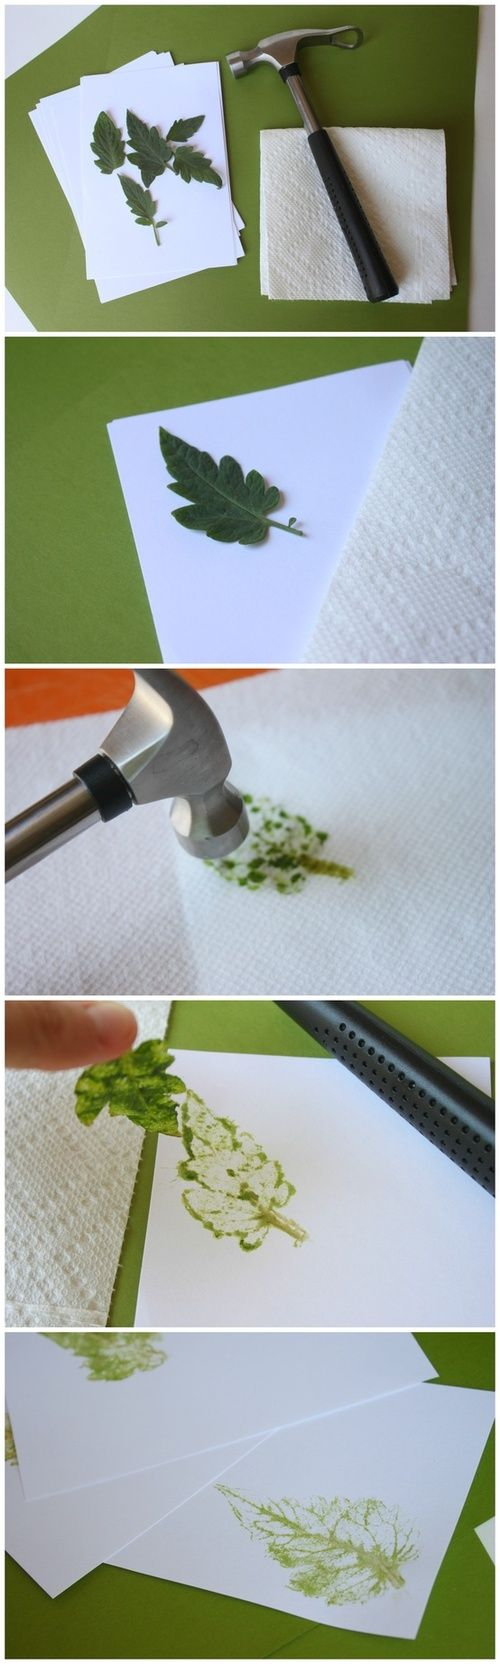 How to Leaf Stamp and Make Your Own Stationery - Gorgeous!